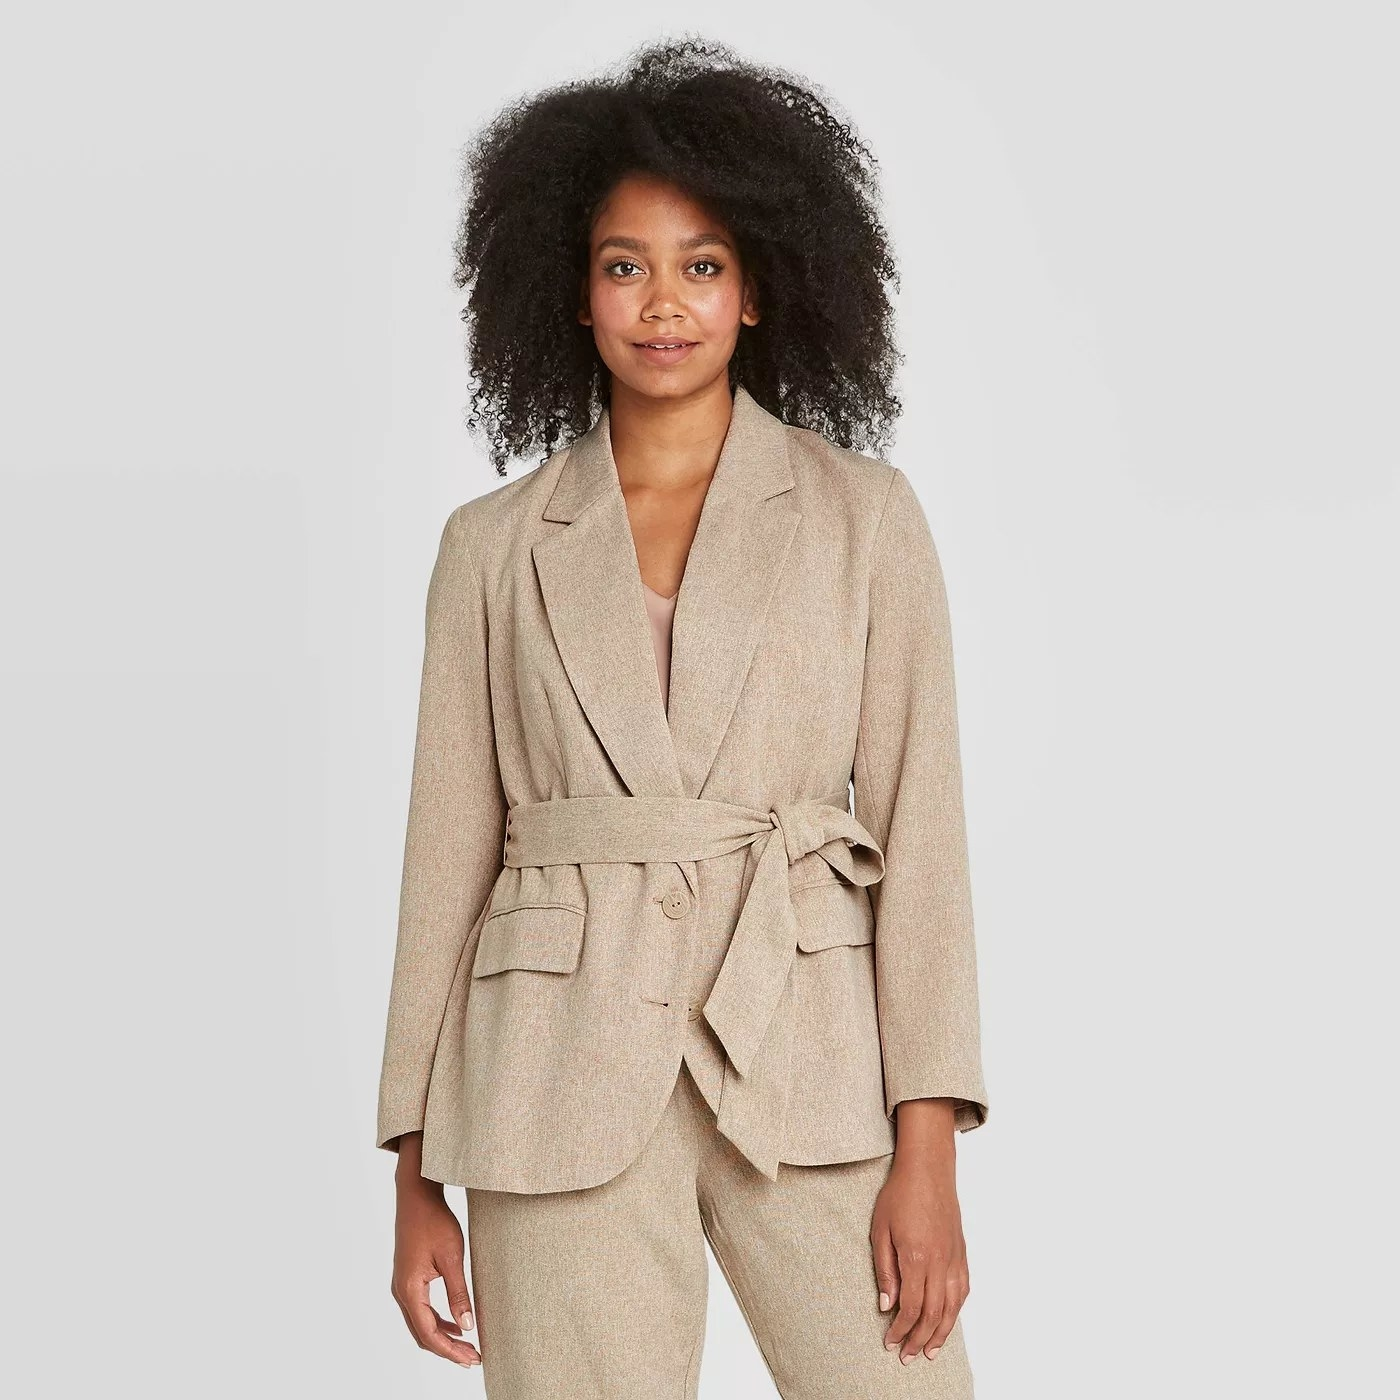 A model wearing a beige blazer with a belt, two buttons, and two pockets